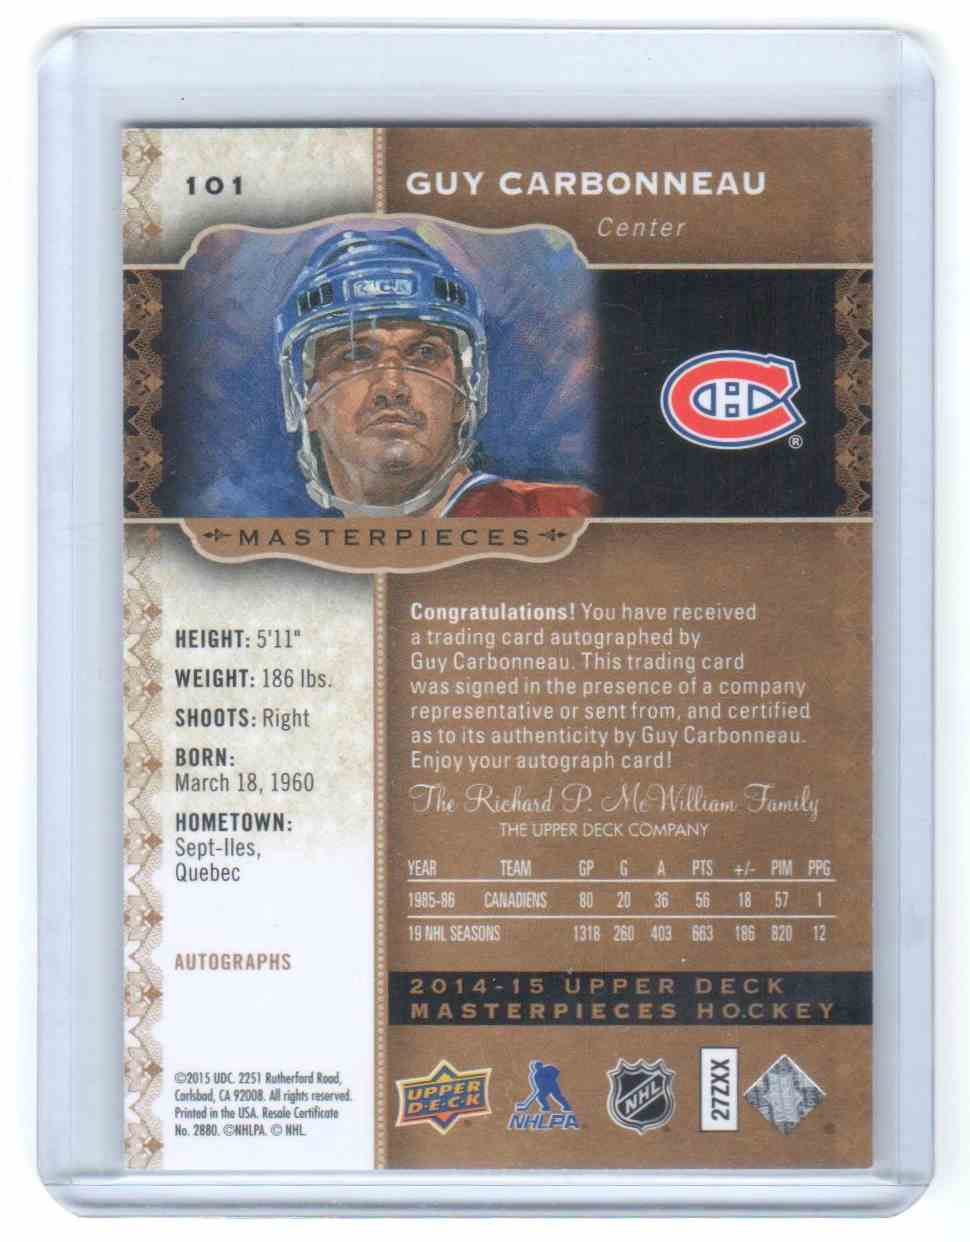 2014-15 UD Upper Deck Masterpieces Guy Carbonneau #101 card back image